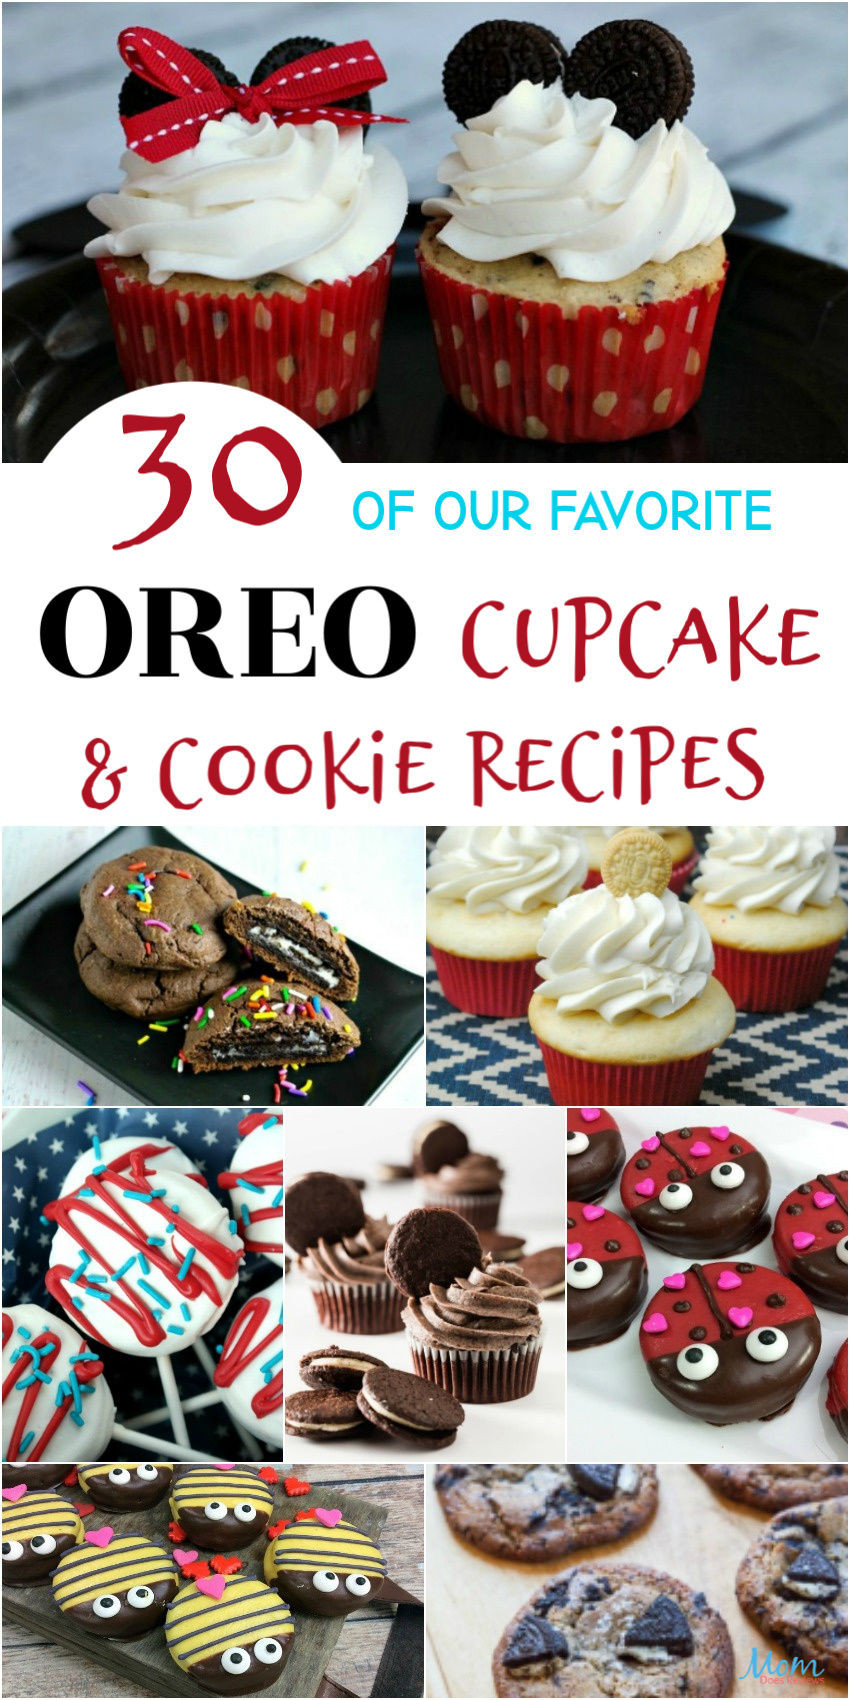 30 of our Favorite Oreo Cupcakes & Cookie #Recipes #desserts #oreo #cupcakes #cookies #getinmybelly